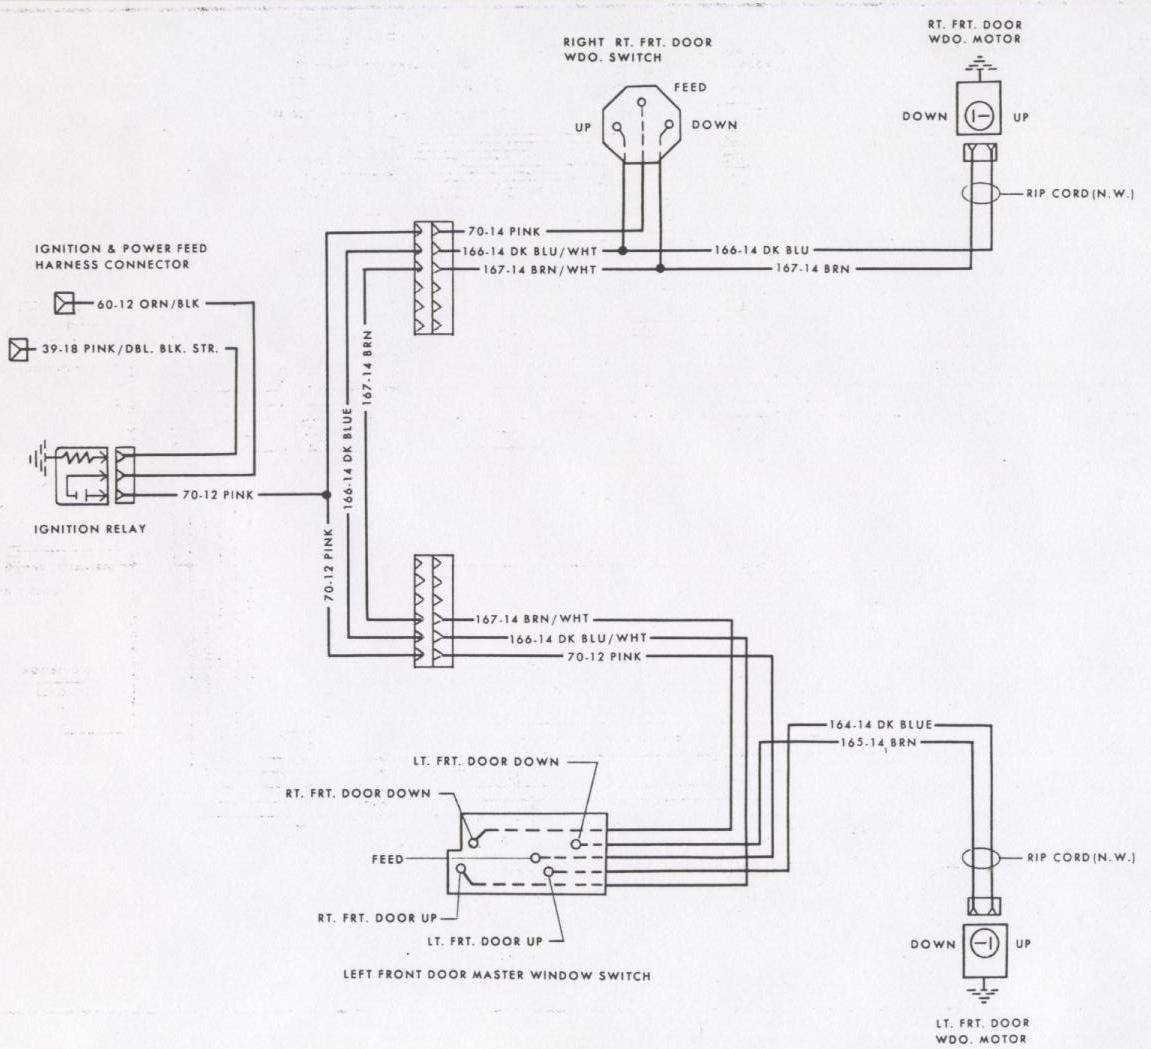 1980 pontiac trans am engine wire diagram  1980  free engine image for user manual download